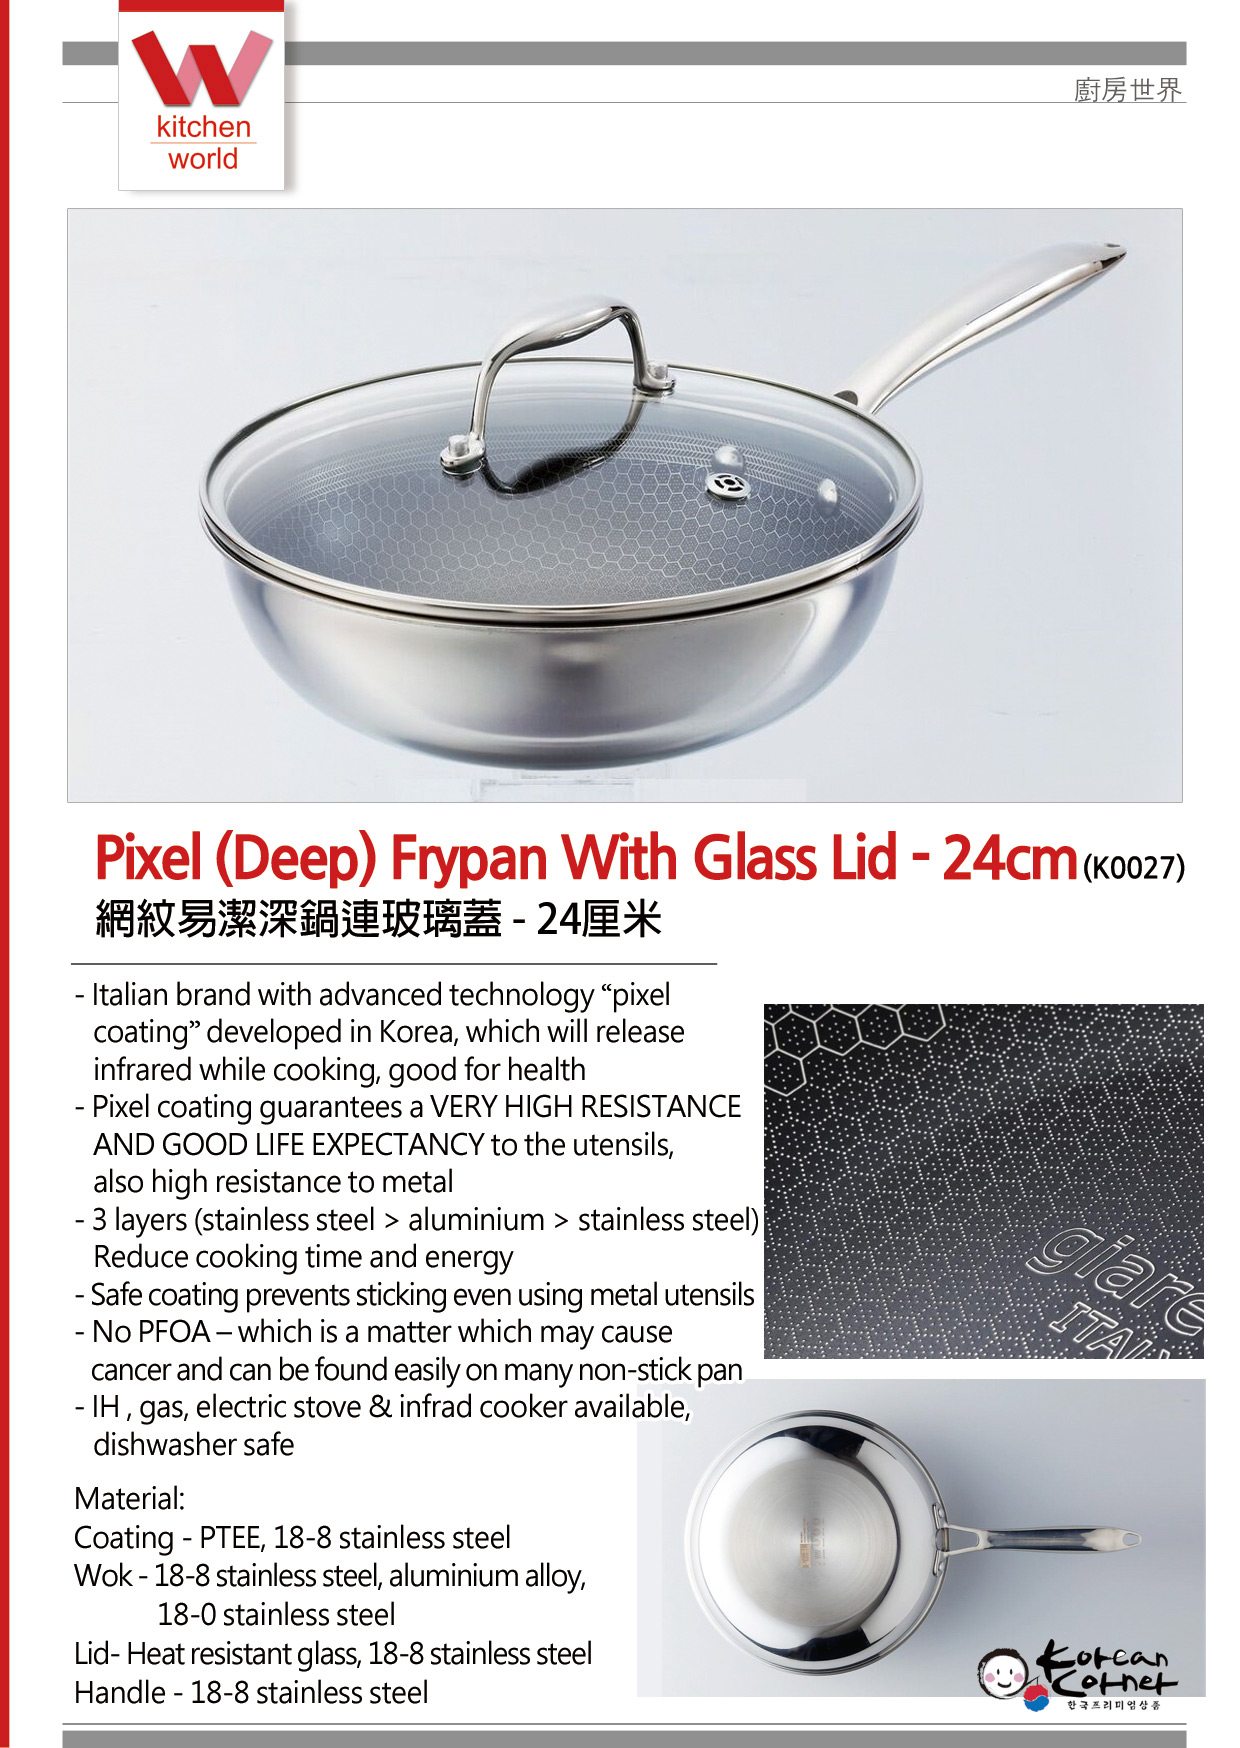 Pixel deep frypan with glass lid -24cm-kitchen world-korean corner